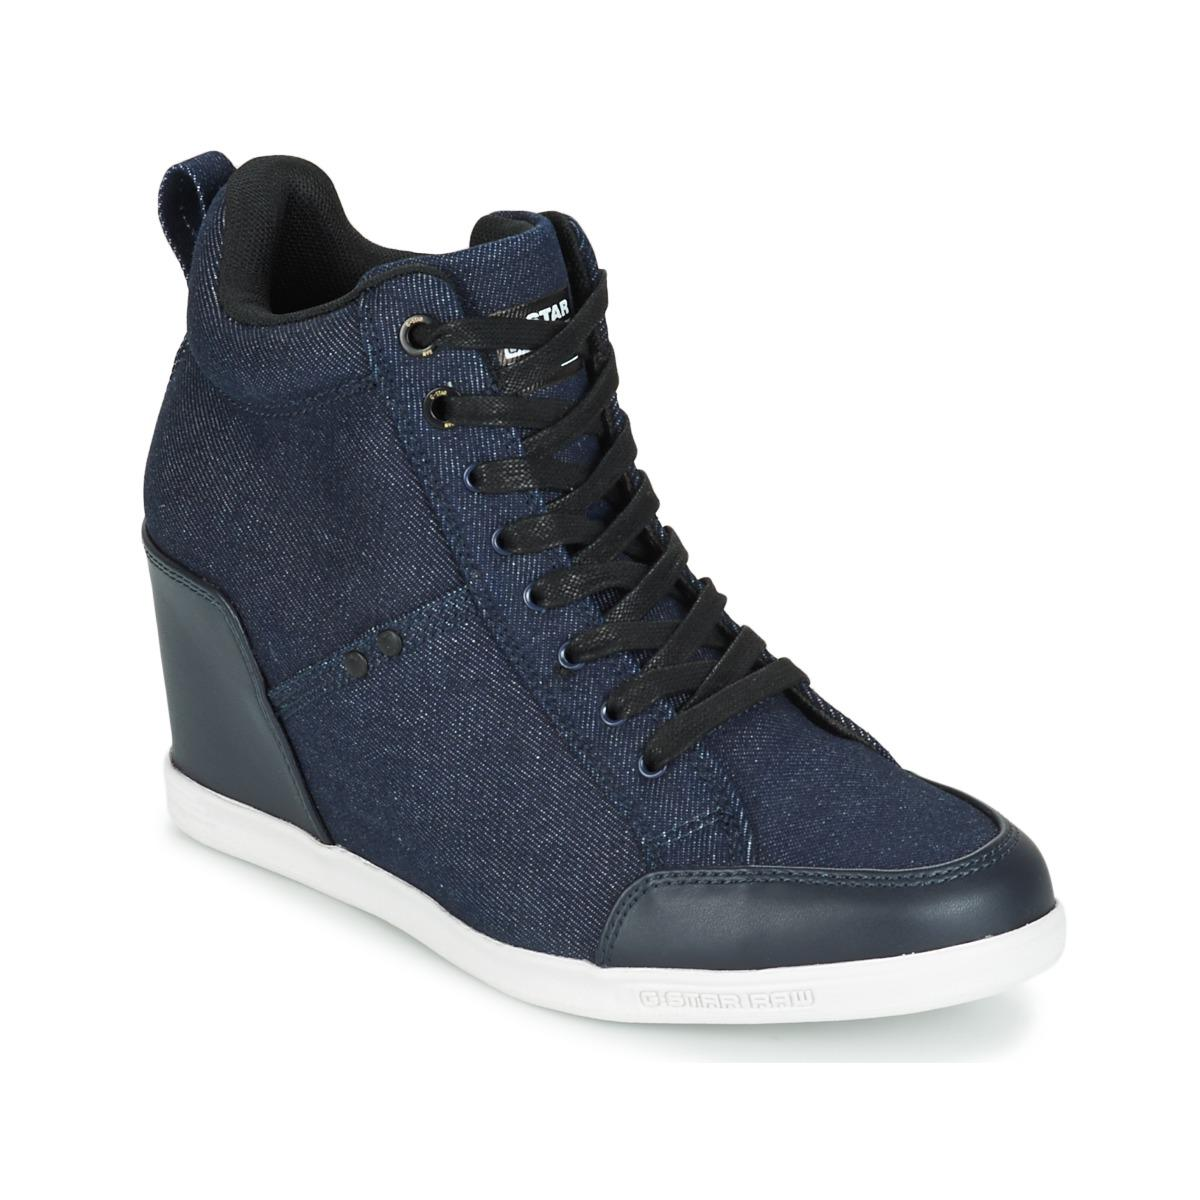 G-Star NEW LABOUR WEDGE women's Shoes (High-top Trainers) in Store Cheap Online Discount Marketable Low Cost Sale Online Sale Visit cm8eaor8GK